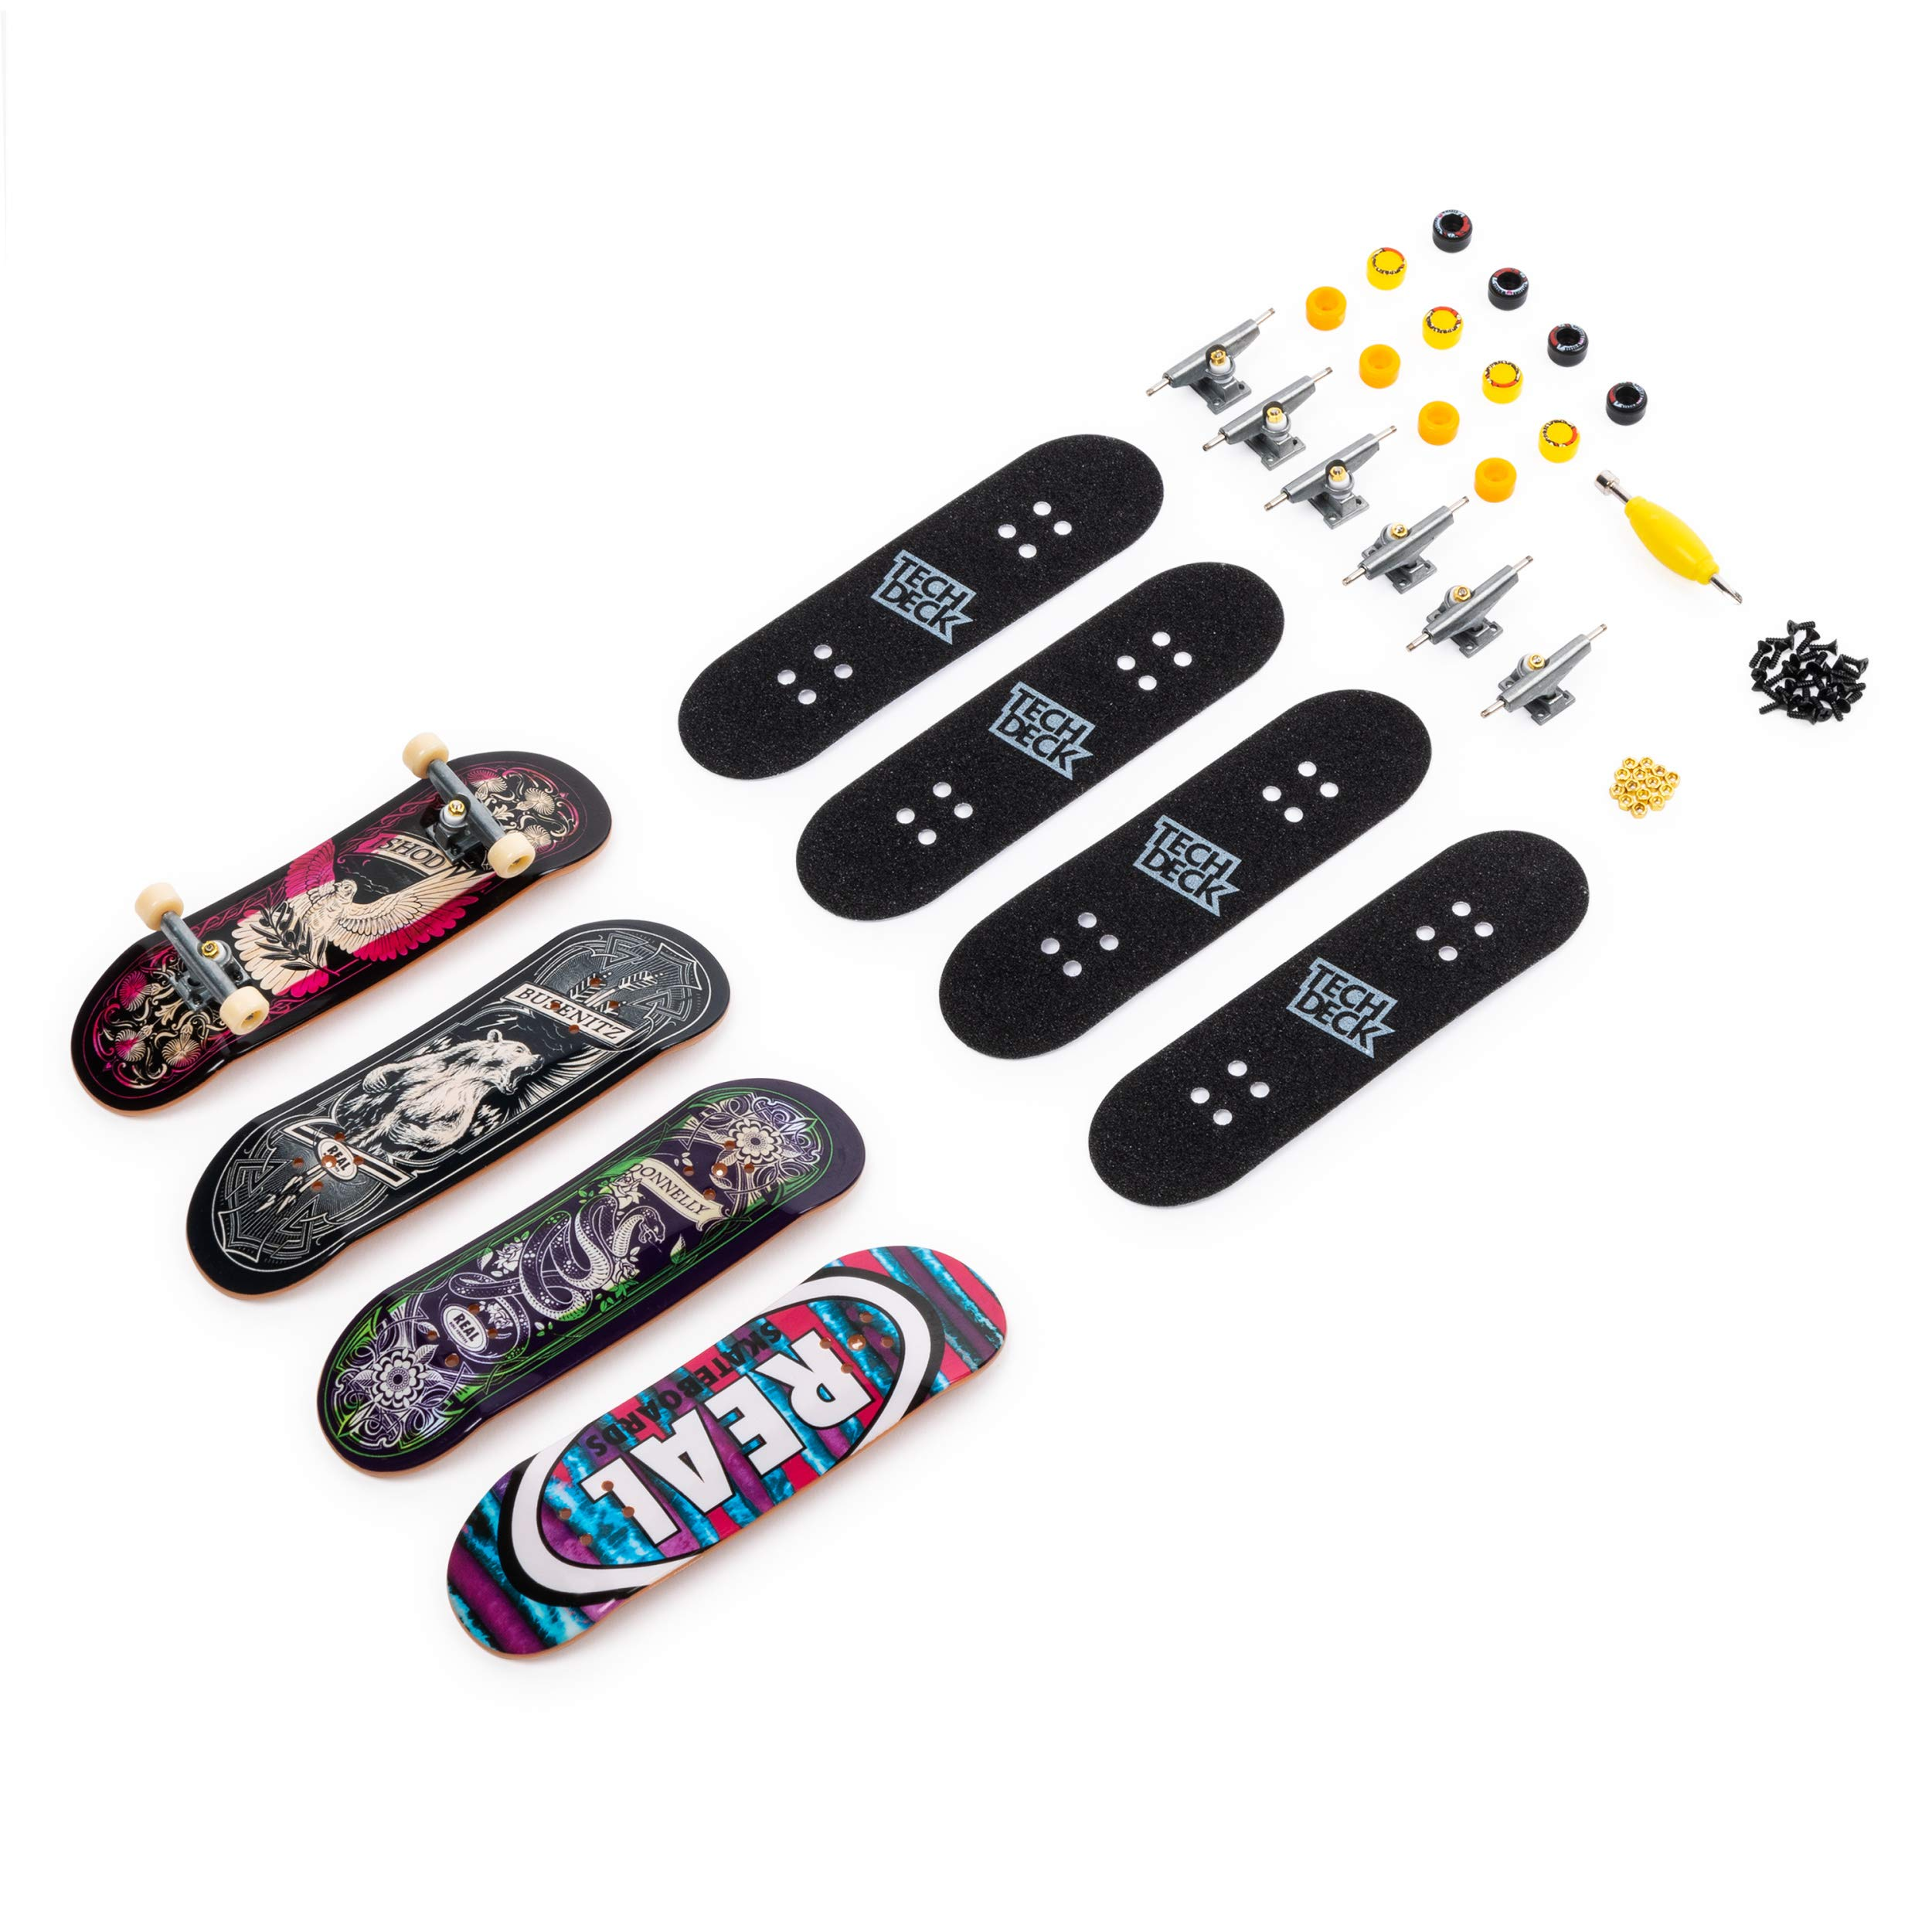 Tech Deck Ultra DLX 4 Pack 96mm Fingerboards - Real Rip 'n Dip Skateboards 20th Anniversary Special Edition by Tech Deck (Image #2)